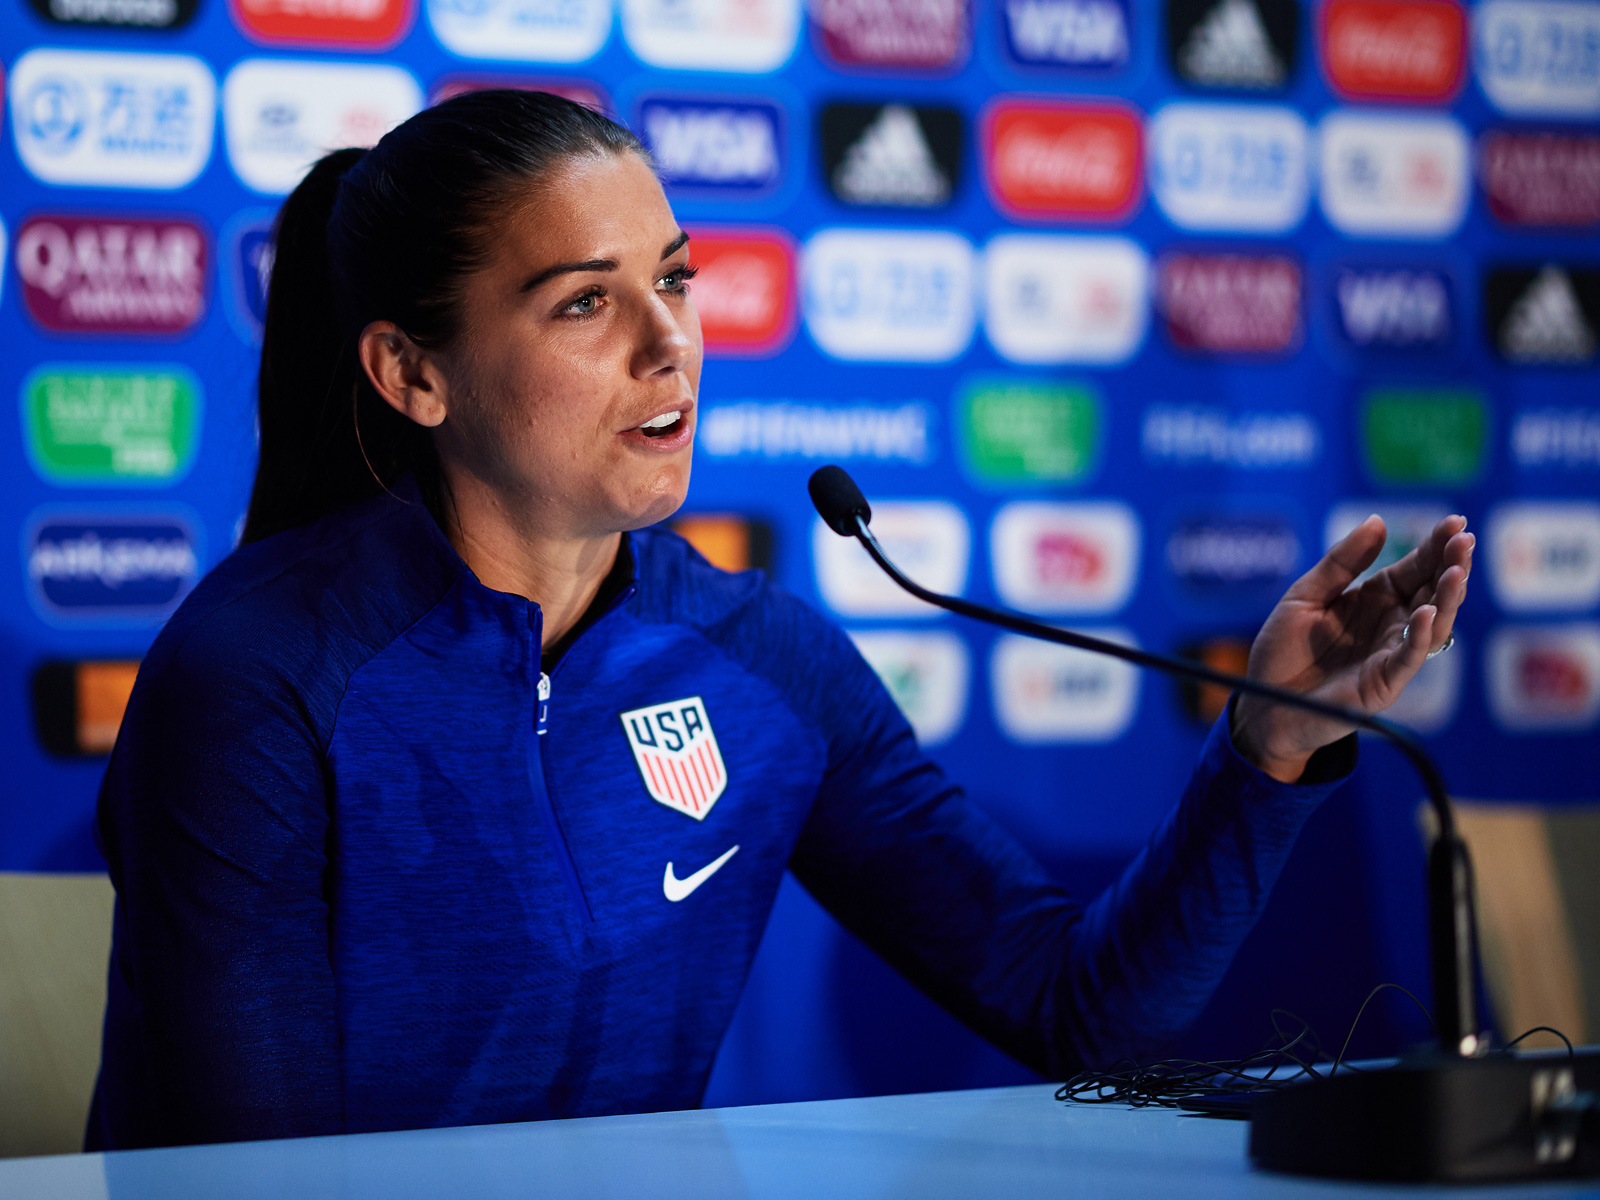 Alex Morgan Gives USA Early Lead Over Thailand in Women's World Cup